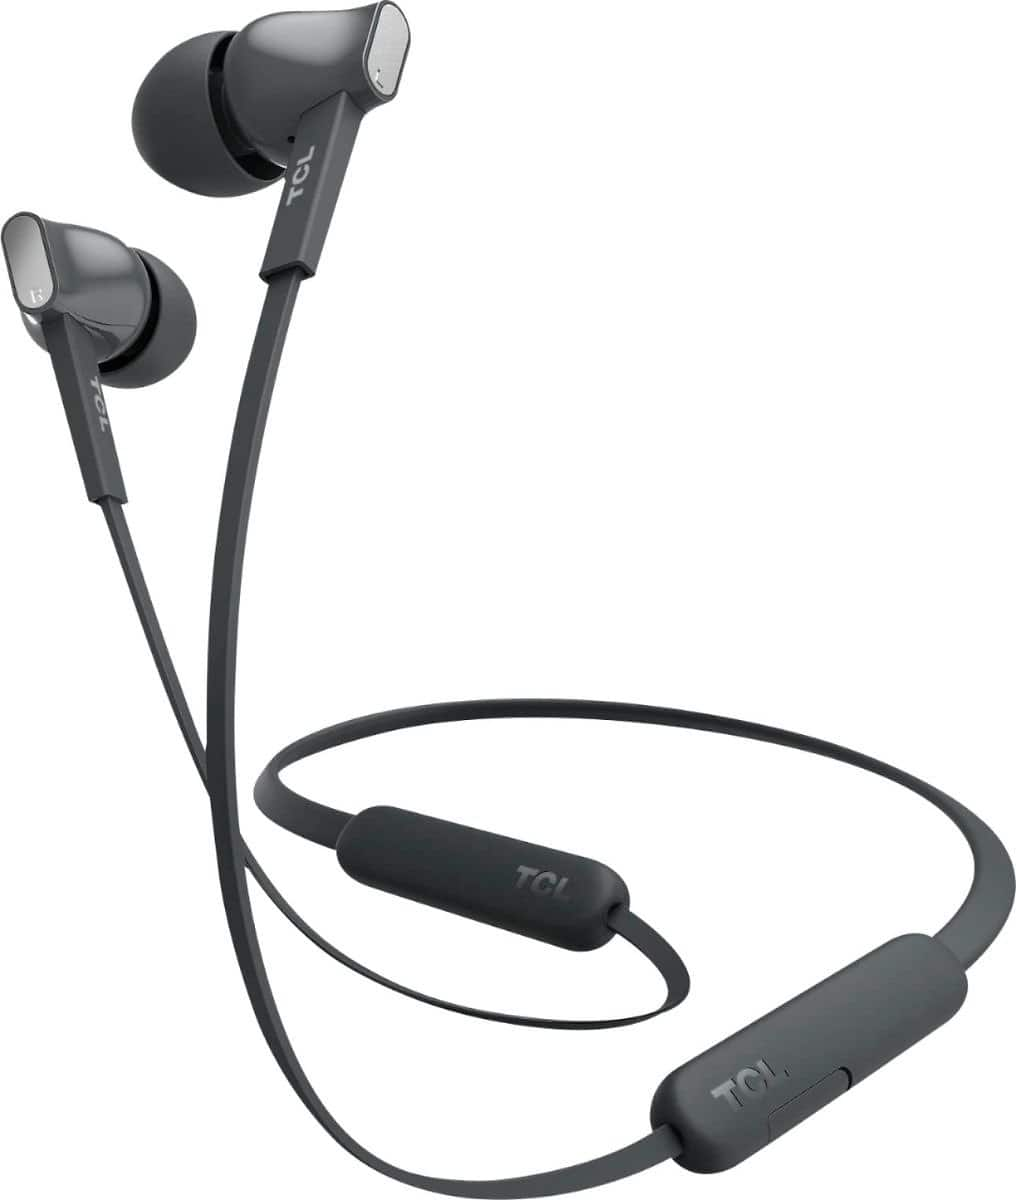 TCL - MTRO100BT Wireless In-Ear Headphones - Shadow Black $19.99